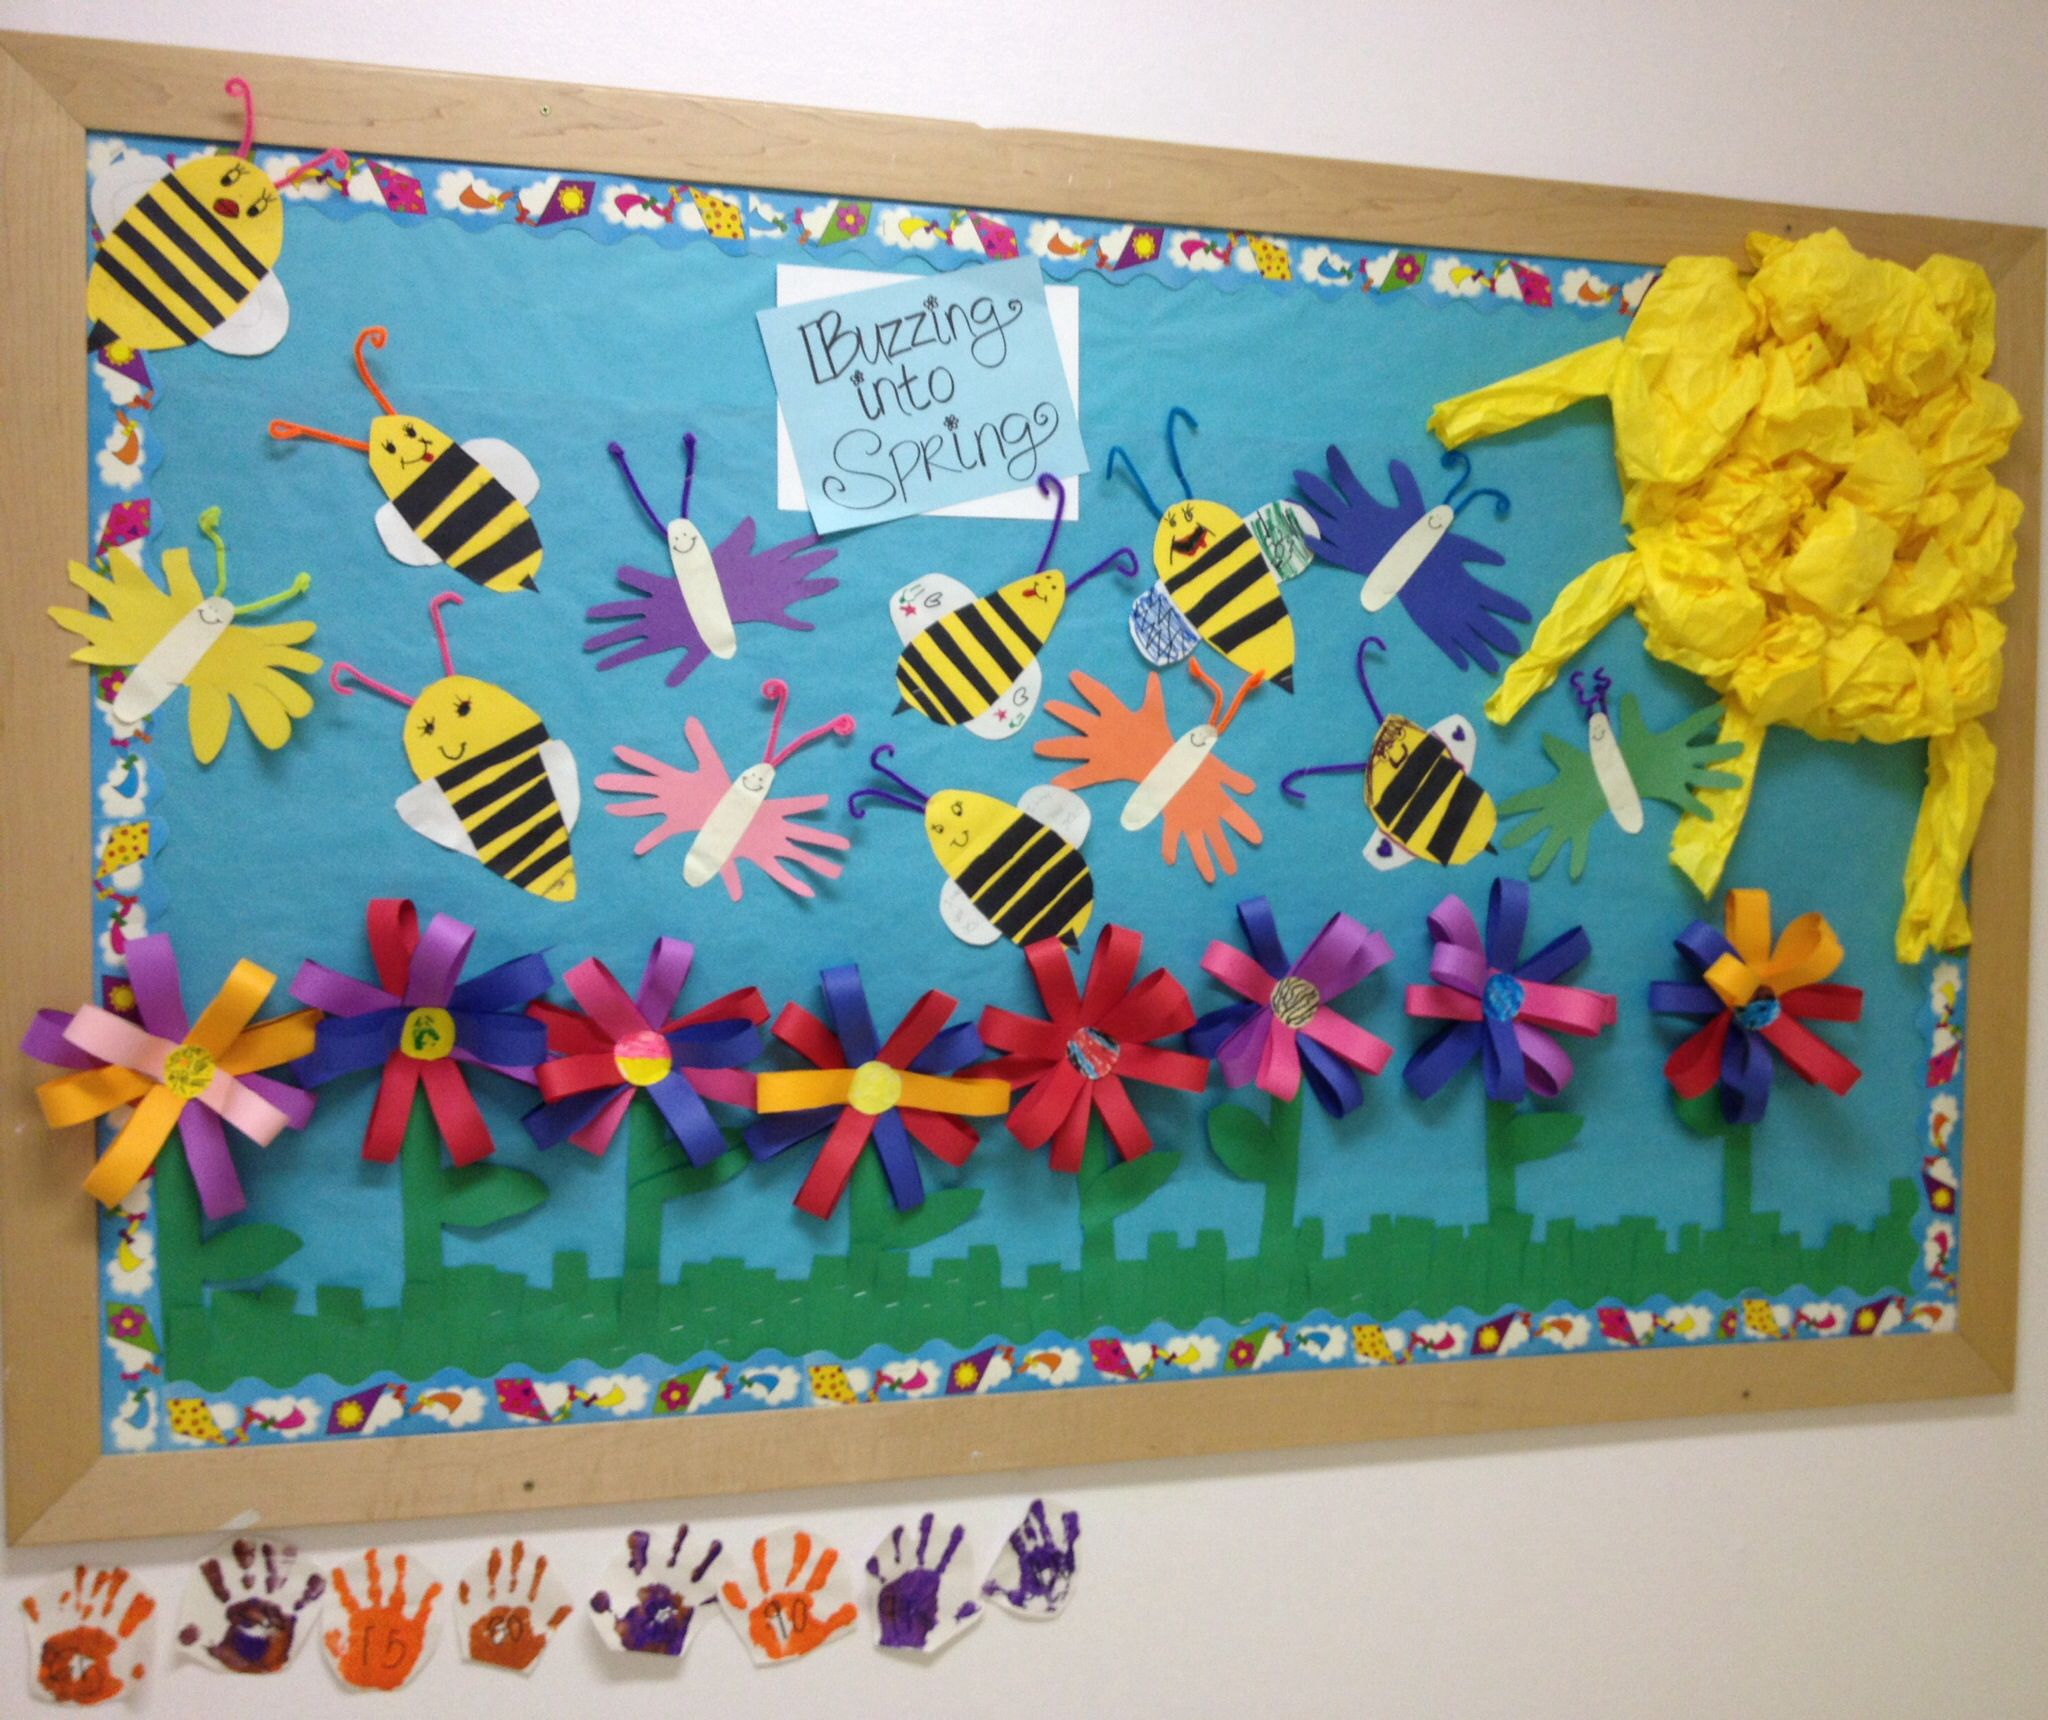 """Bulletin Board Ideas Early Childhood: """"Buzzing Into Spring"""" Bulletin Board!!! Made This With"""